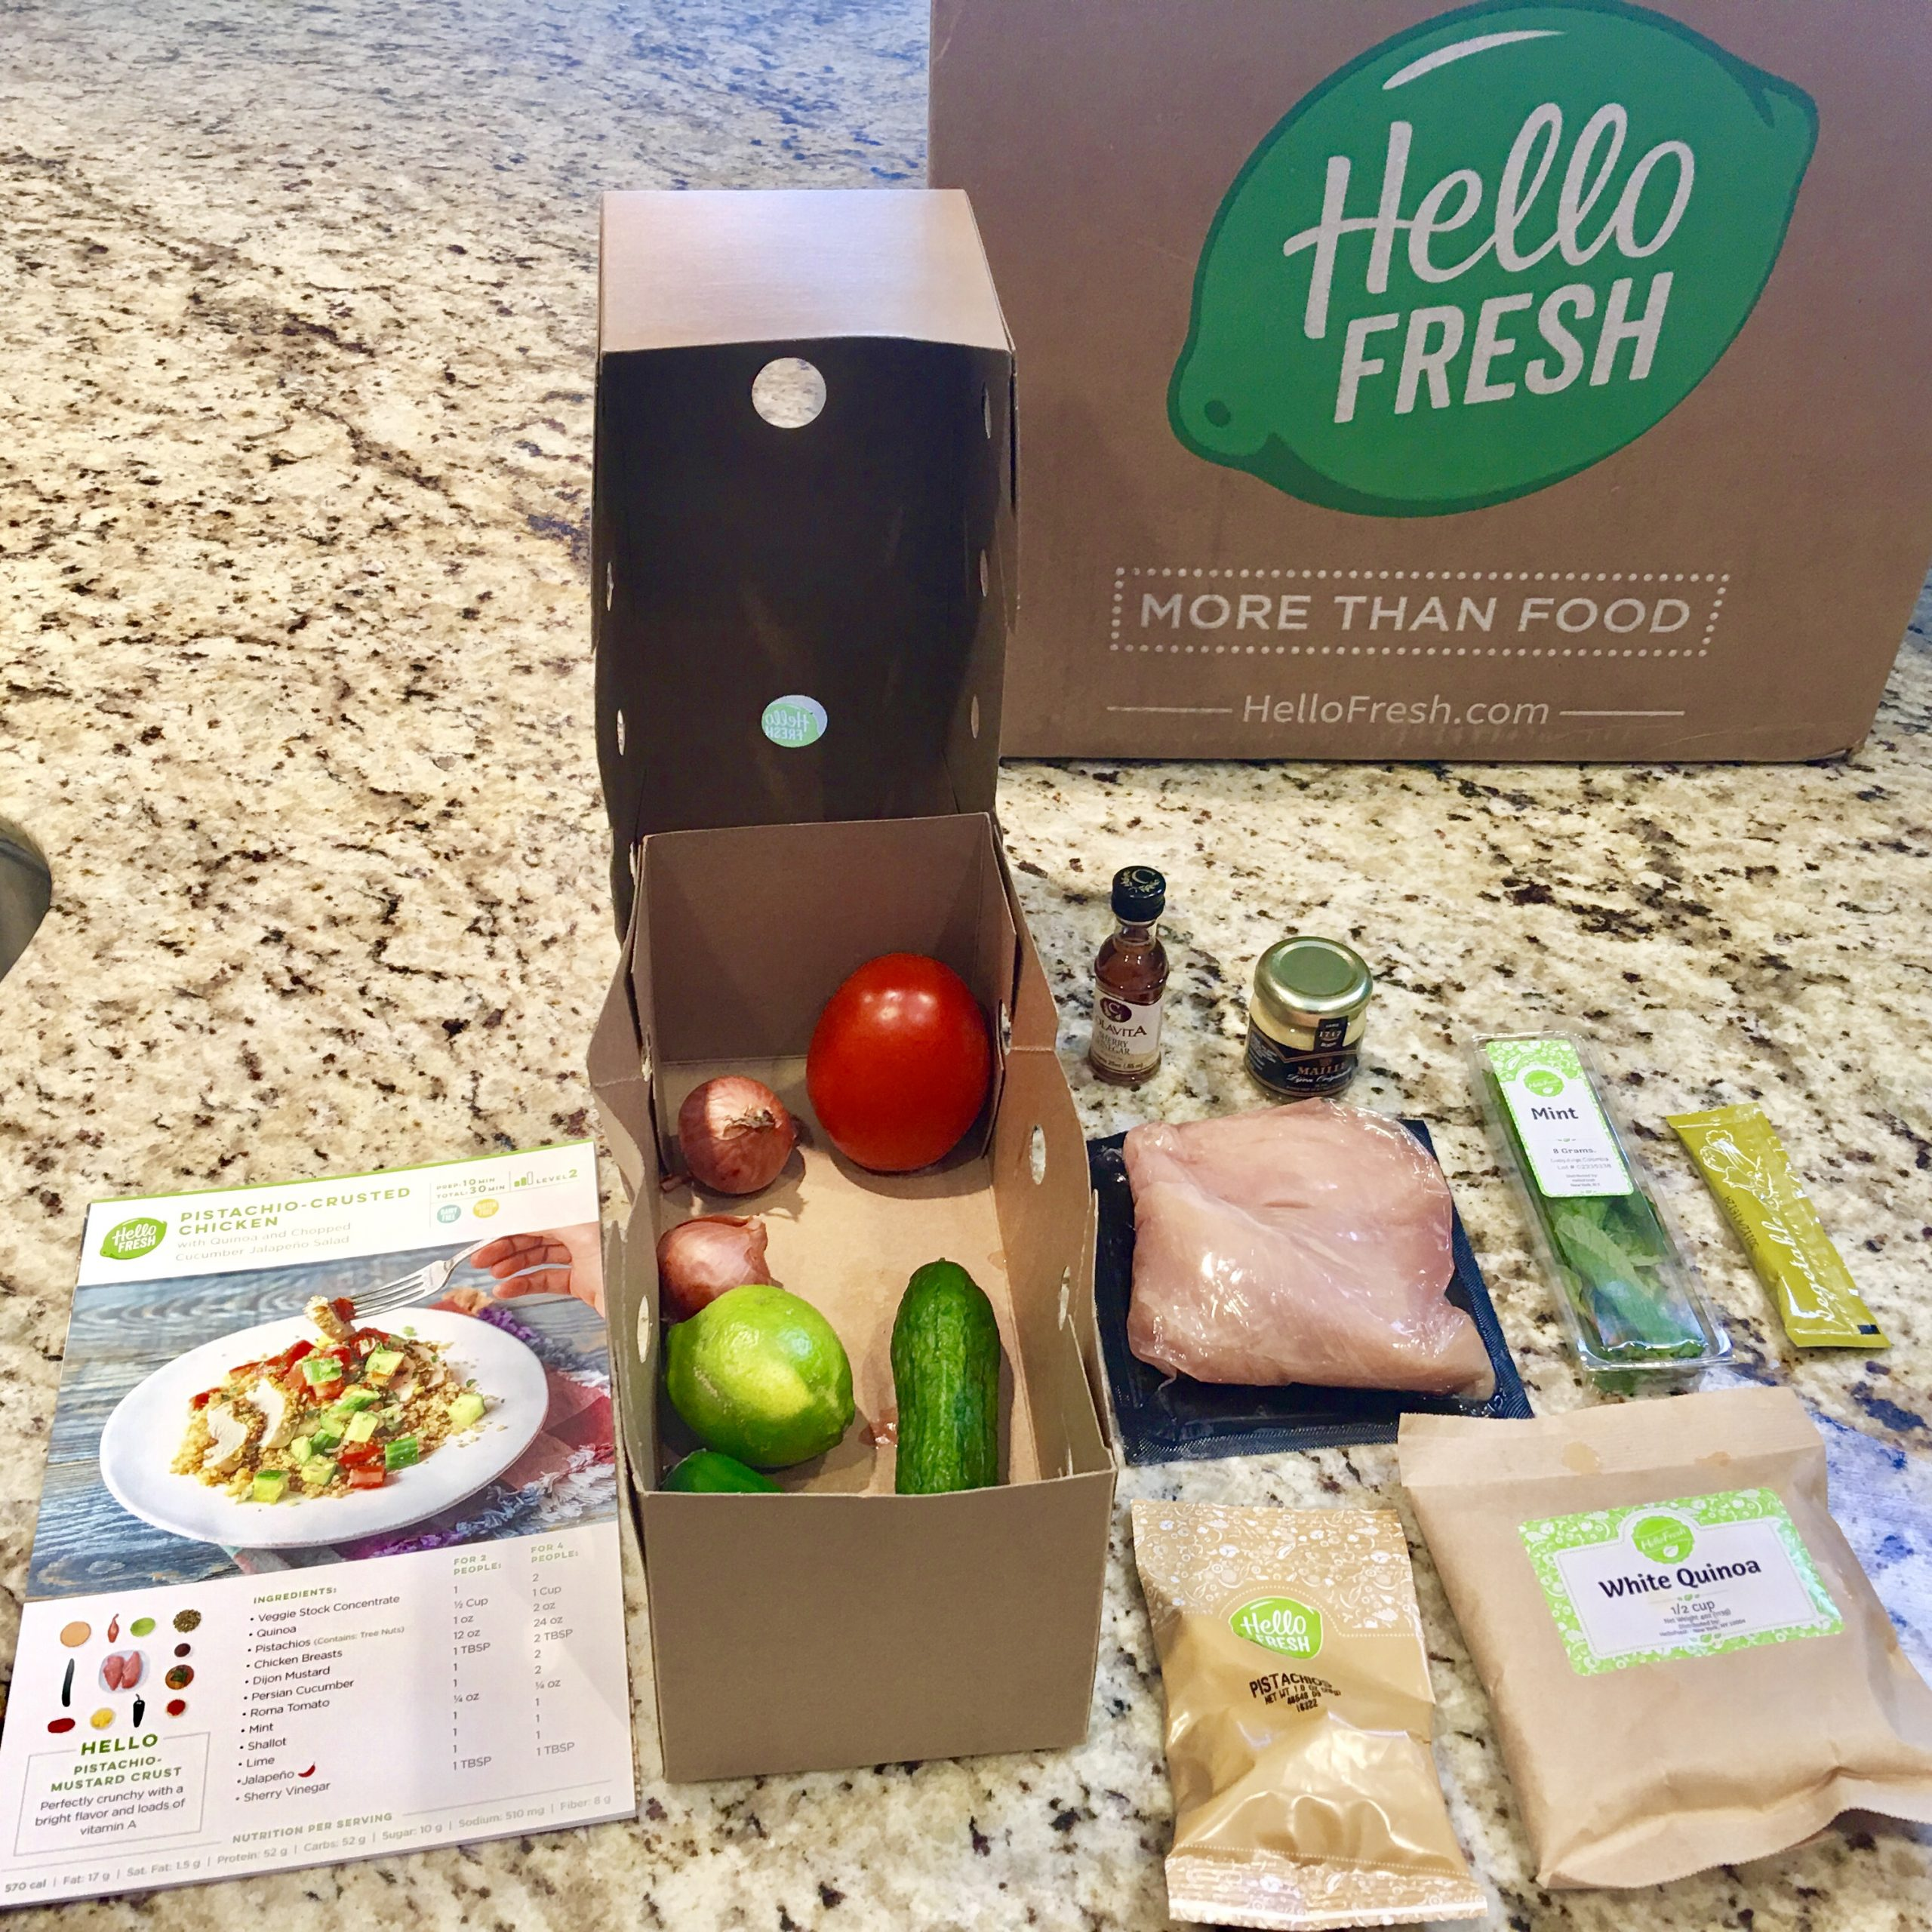 Colors Pictures Hellofresh Meal Kit Delivery Service